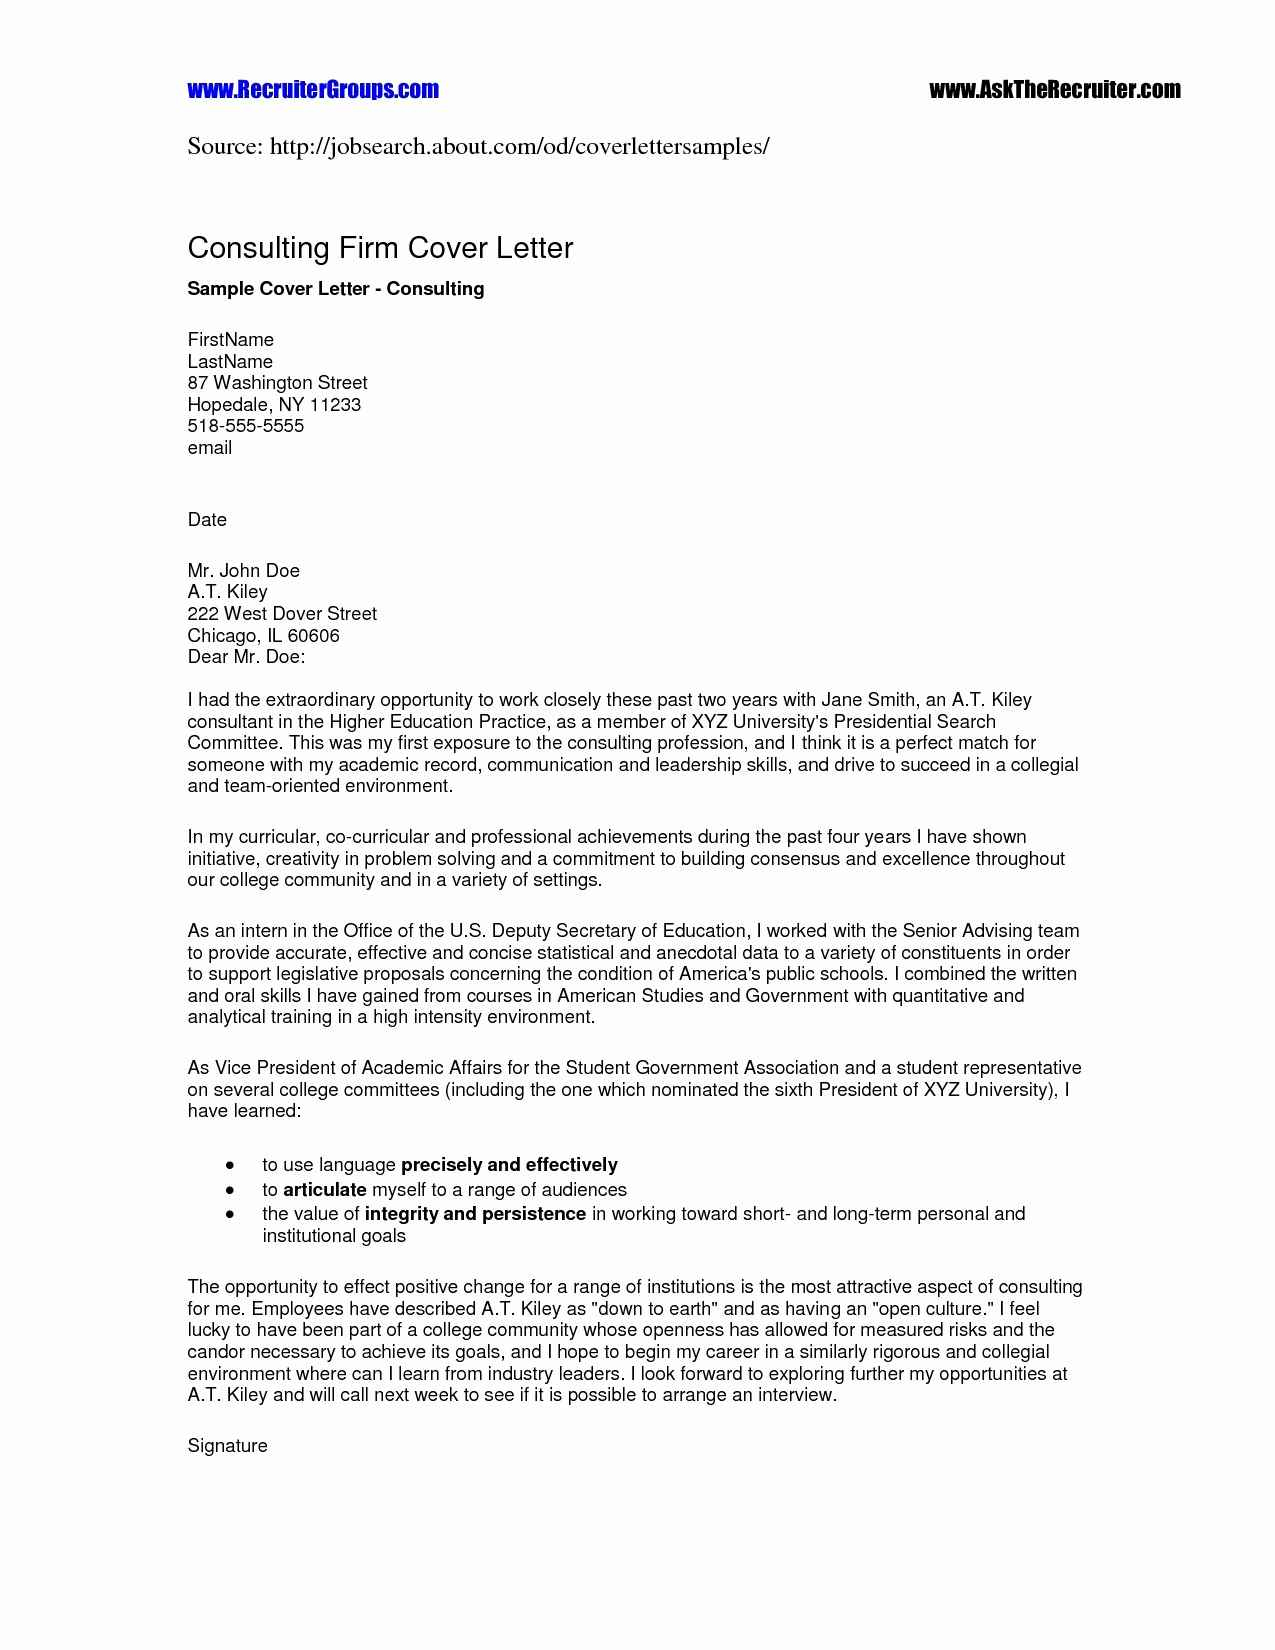 Targeted Cover Letter Template - Sample Tar Ed Cover Letter for A Resume Amazing Sample Cover